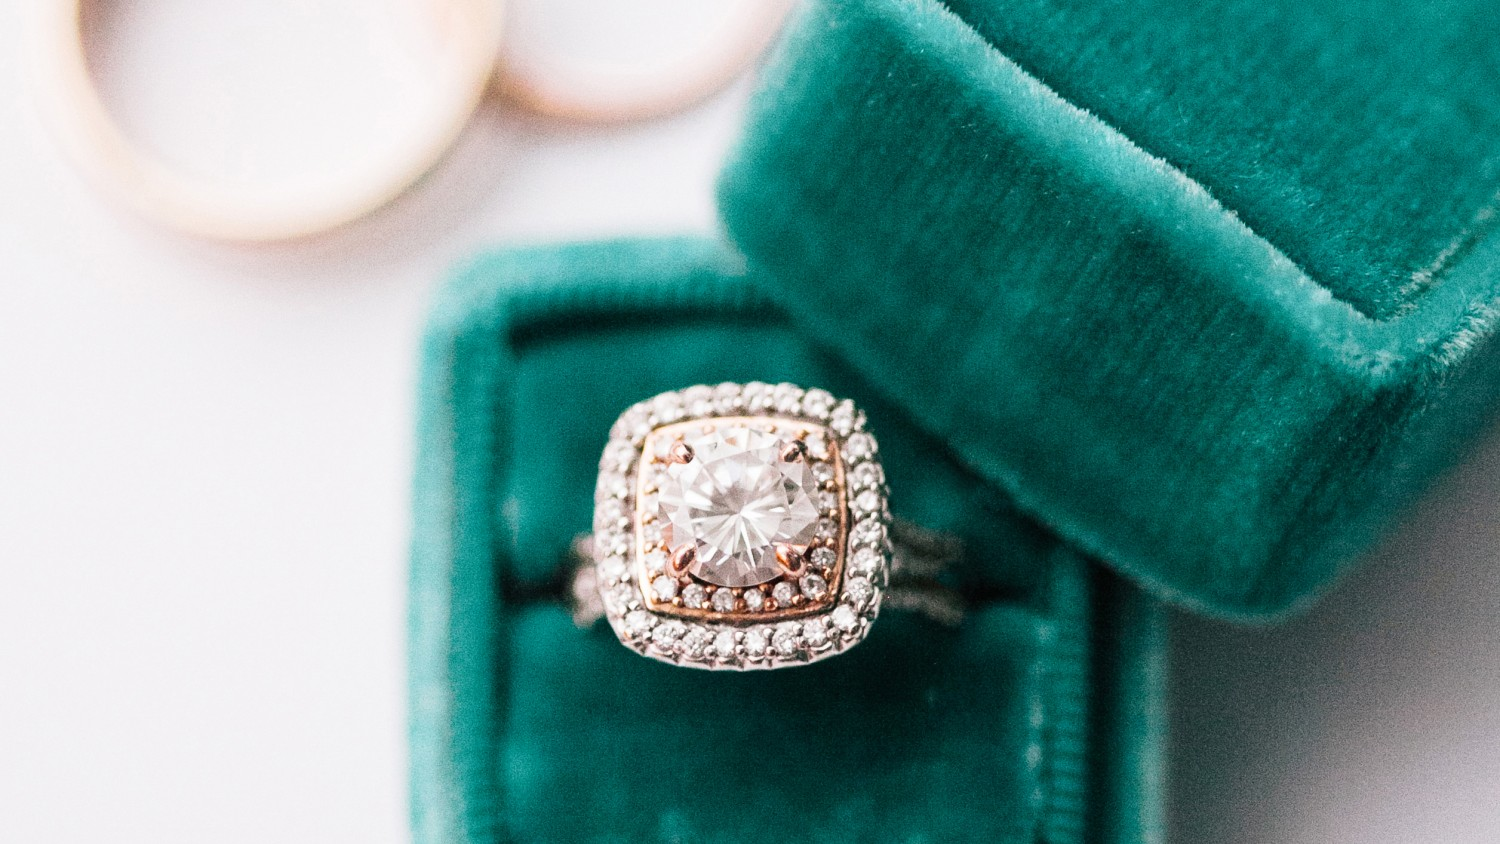 Picking an Engagement Ring? 4 Thoughts to Consider